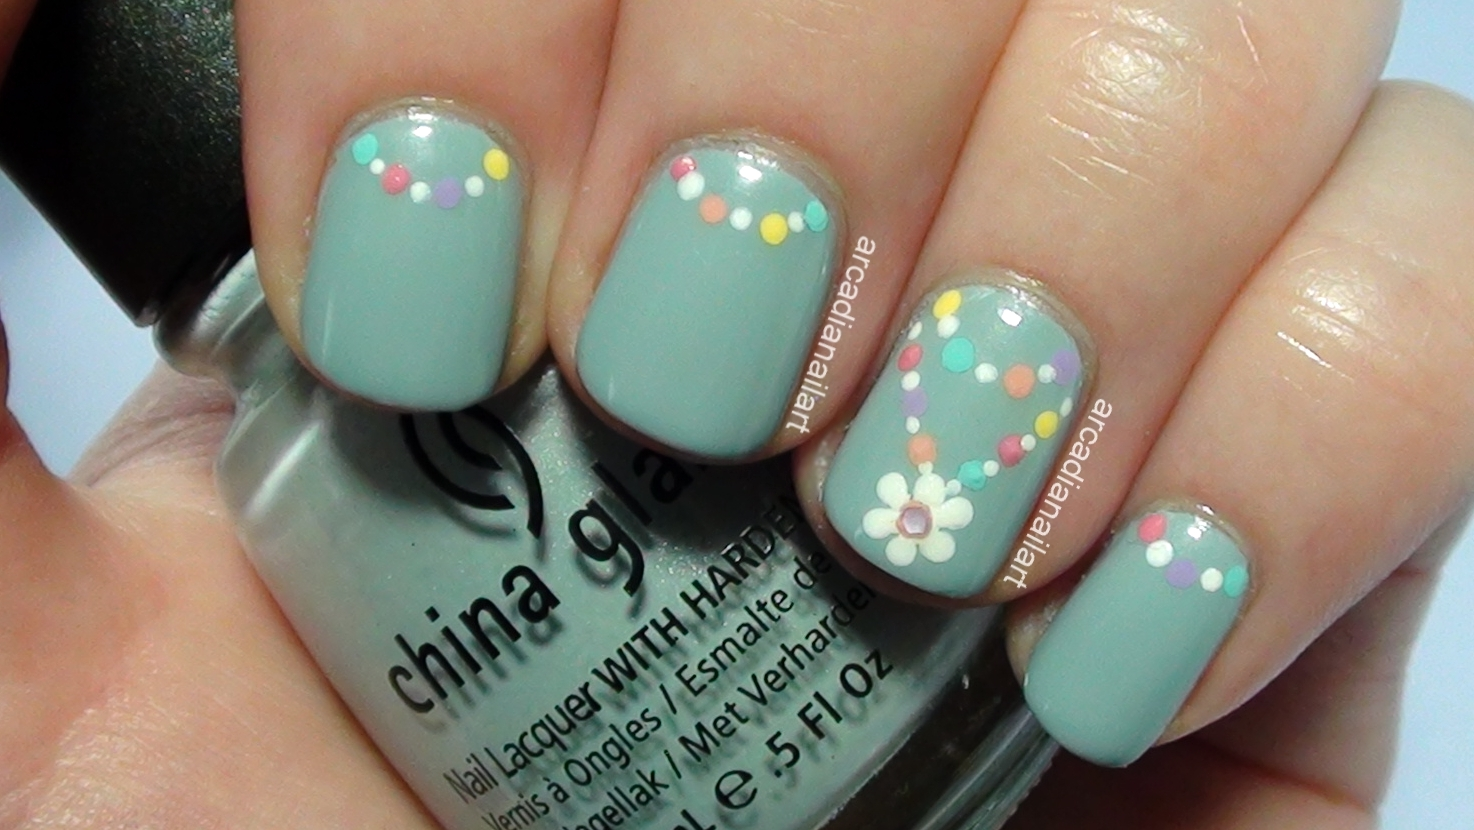 Easy Flower Chain Nail Art - ArcadiaNailArt: Simple Flower Chain Nail Art